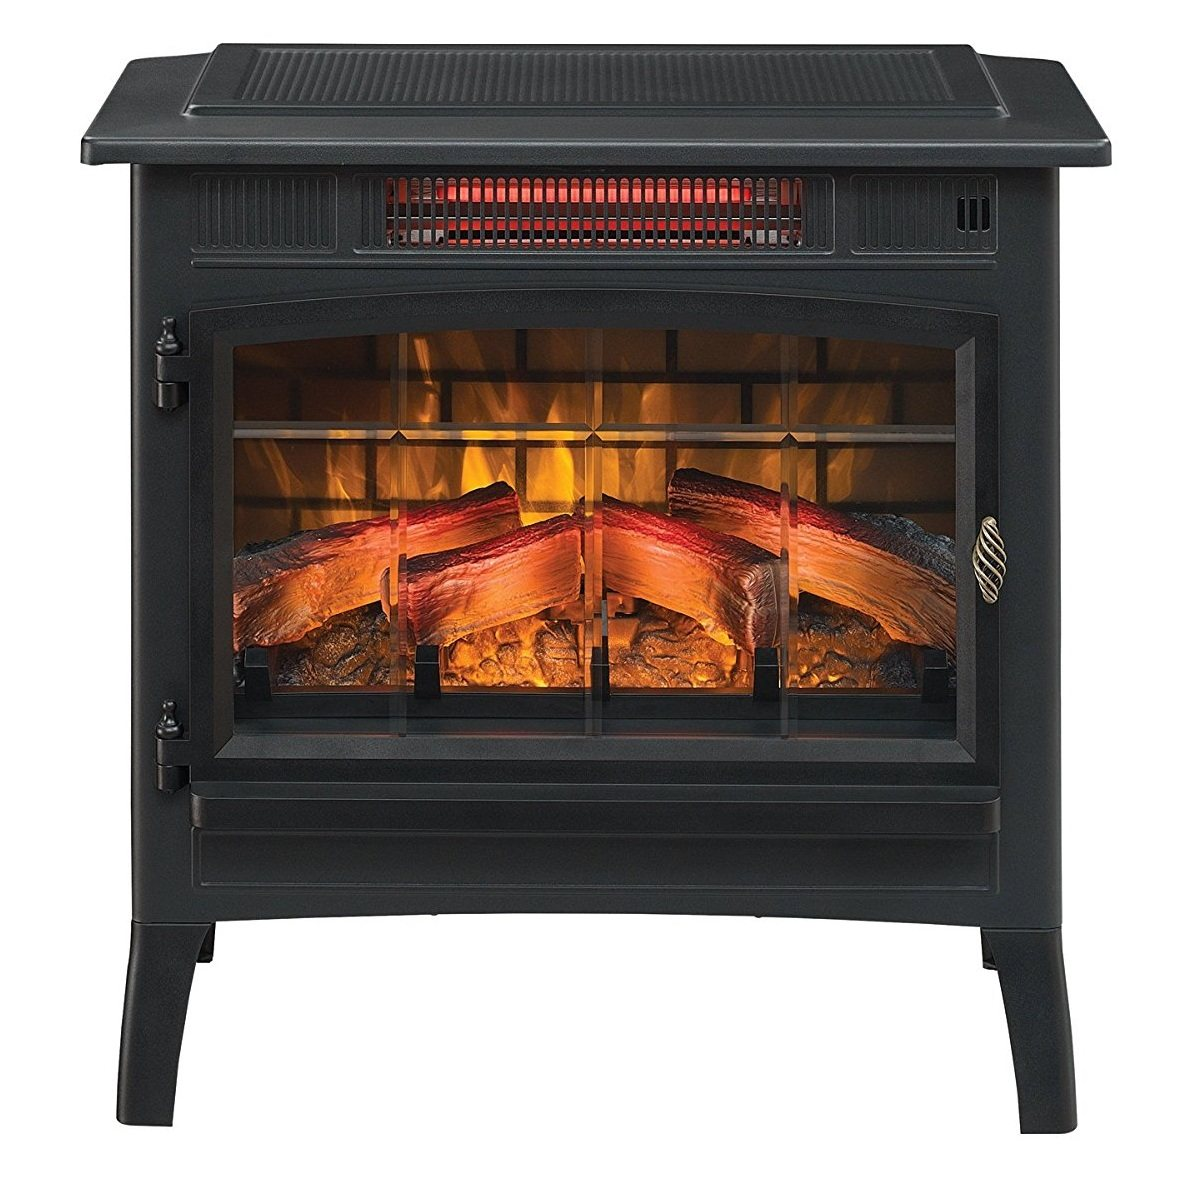 Electric Coal Fireplace The 5 Best Electric Stove Fireplace Reviews Of 2017